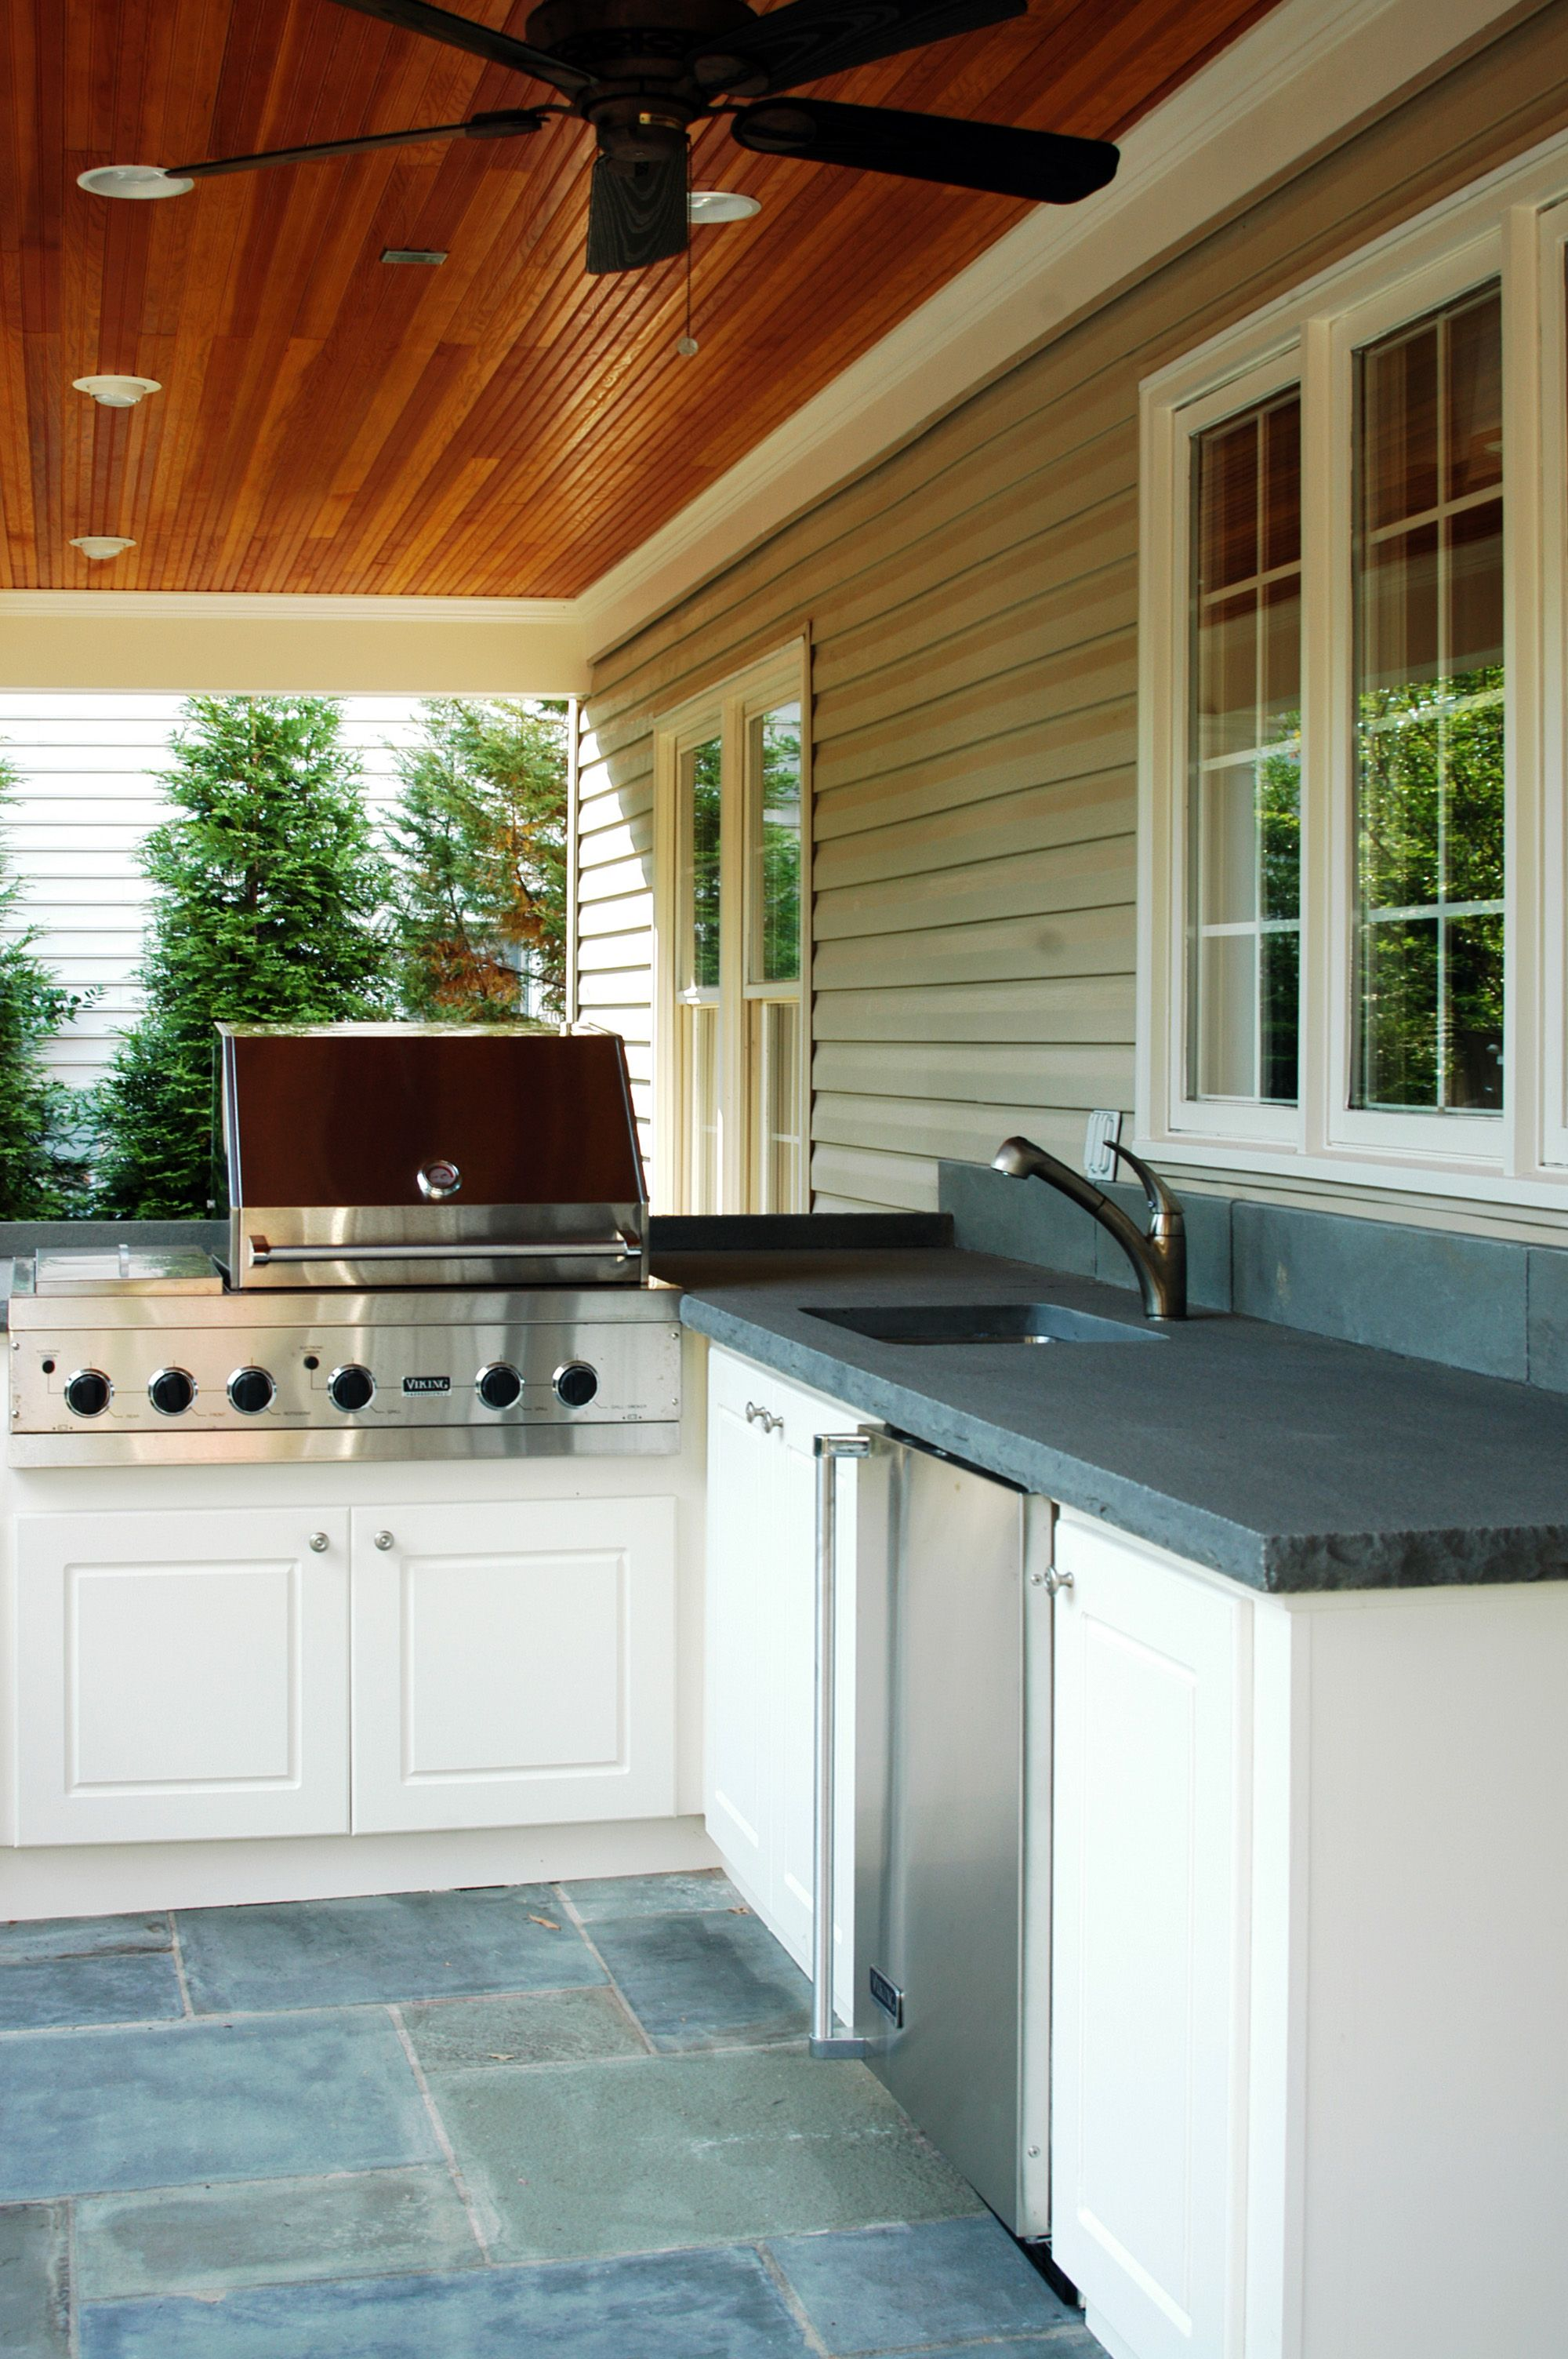 Kitchens With Wood Paneling: Outdoor Kitchen- ? Wood Paneling On Roof